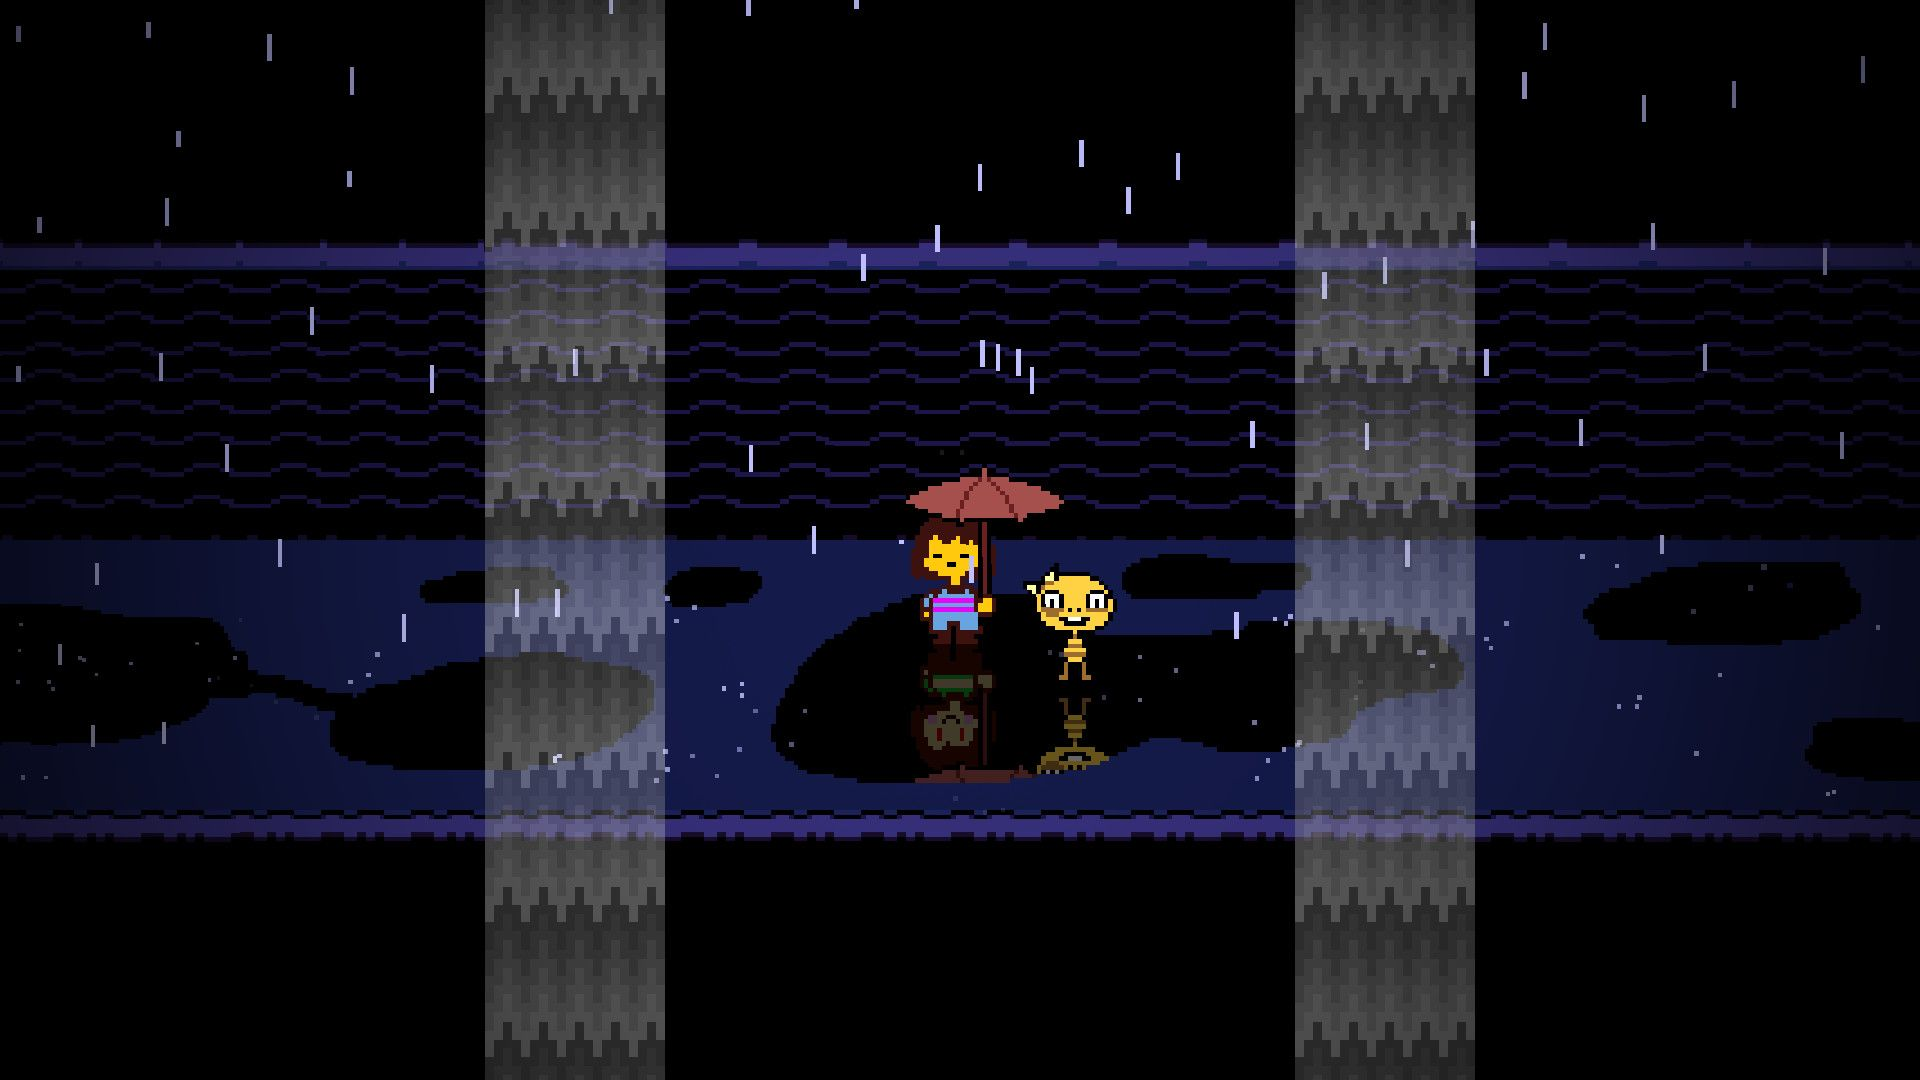 undertale background hd